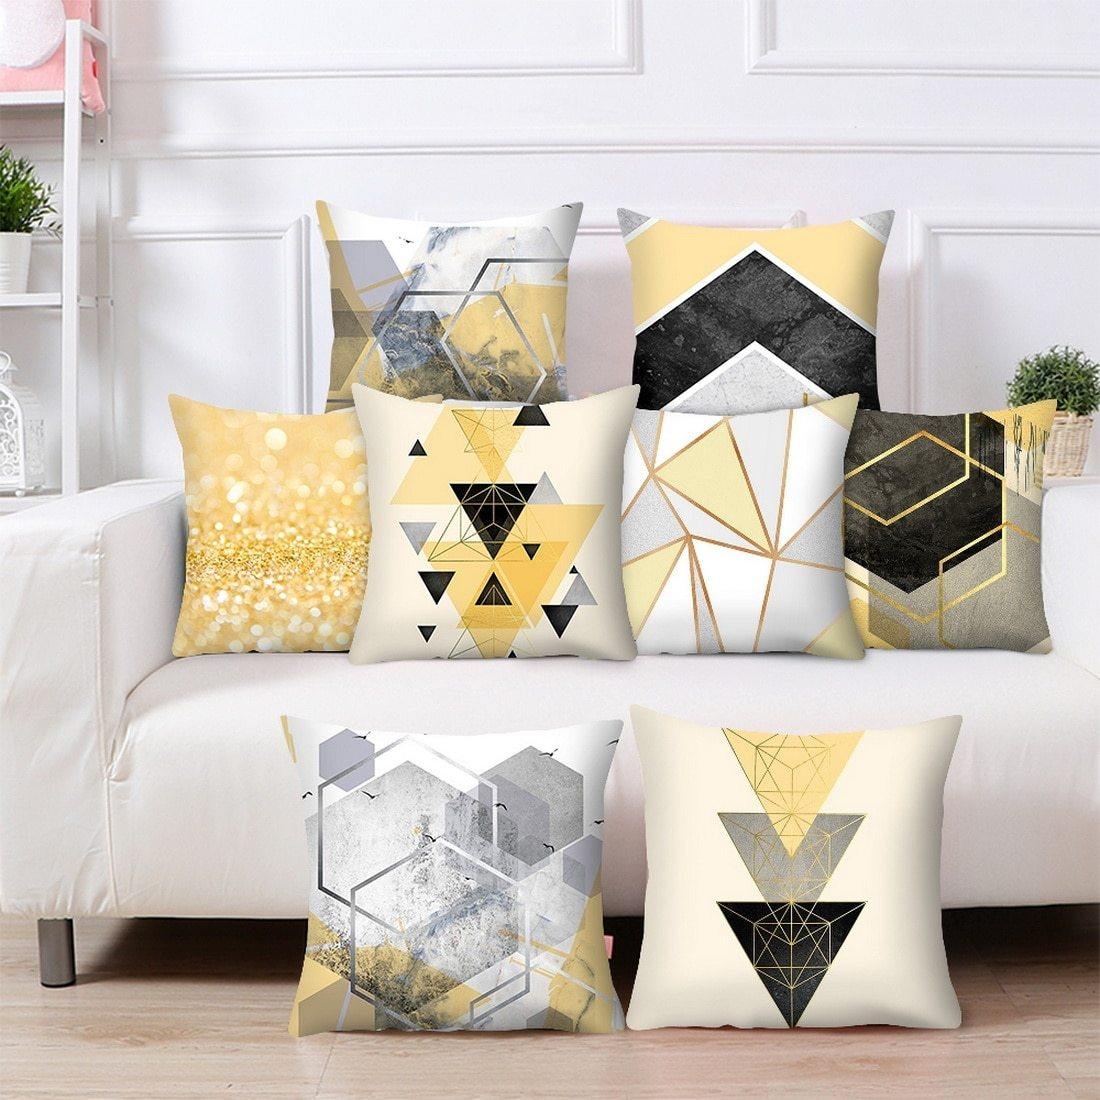 busy-yellow-throw-pillow.jpg